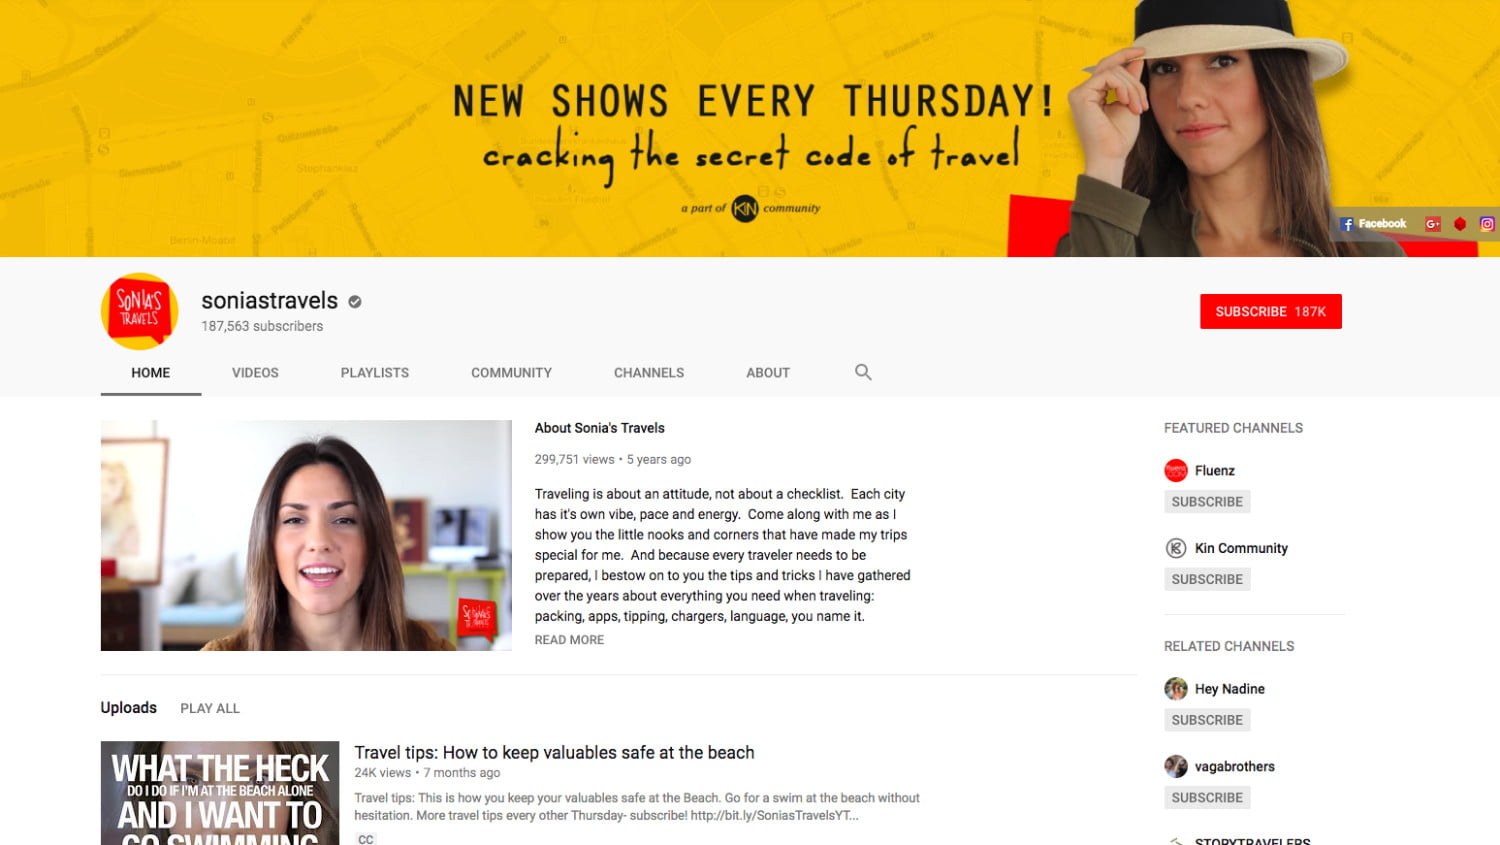 dating.com reviews youtube channel guide tv